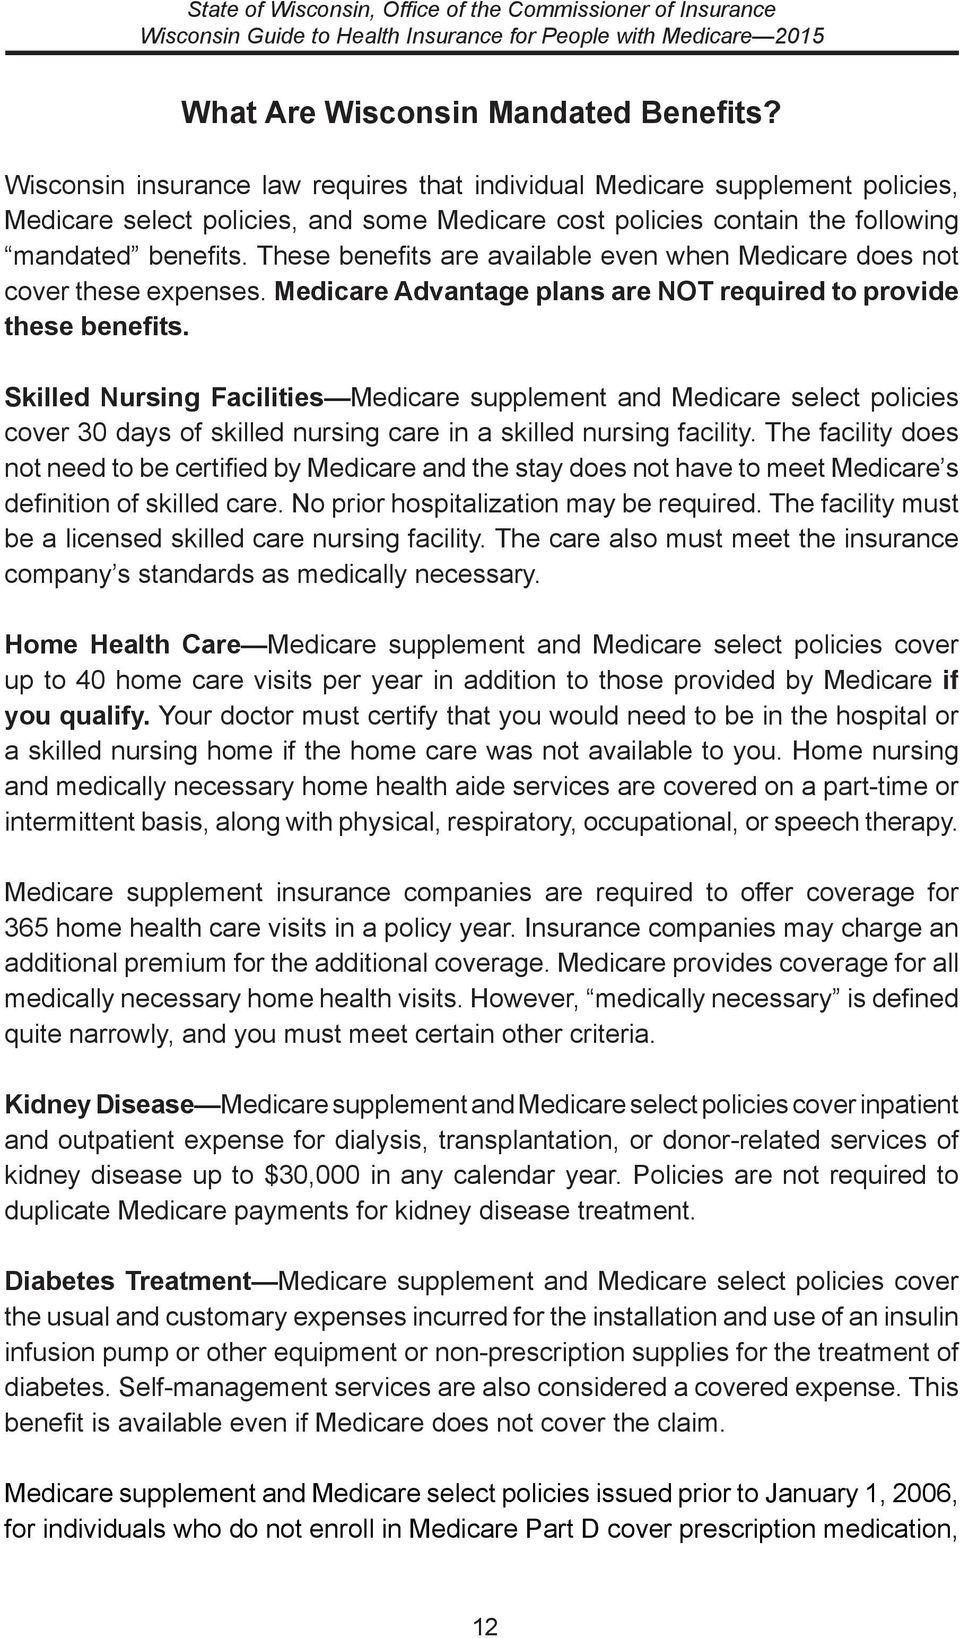 These benefits are available even when Medicare does not cover these expenses. Medicare Advantage plans are NOT required to provide these benefits.